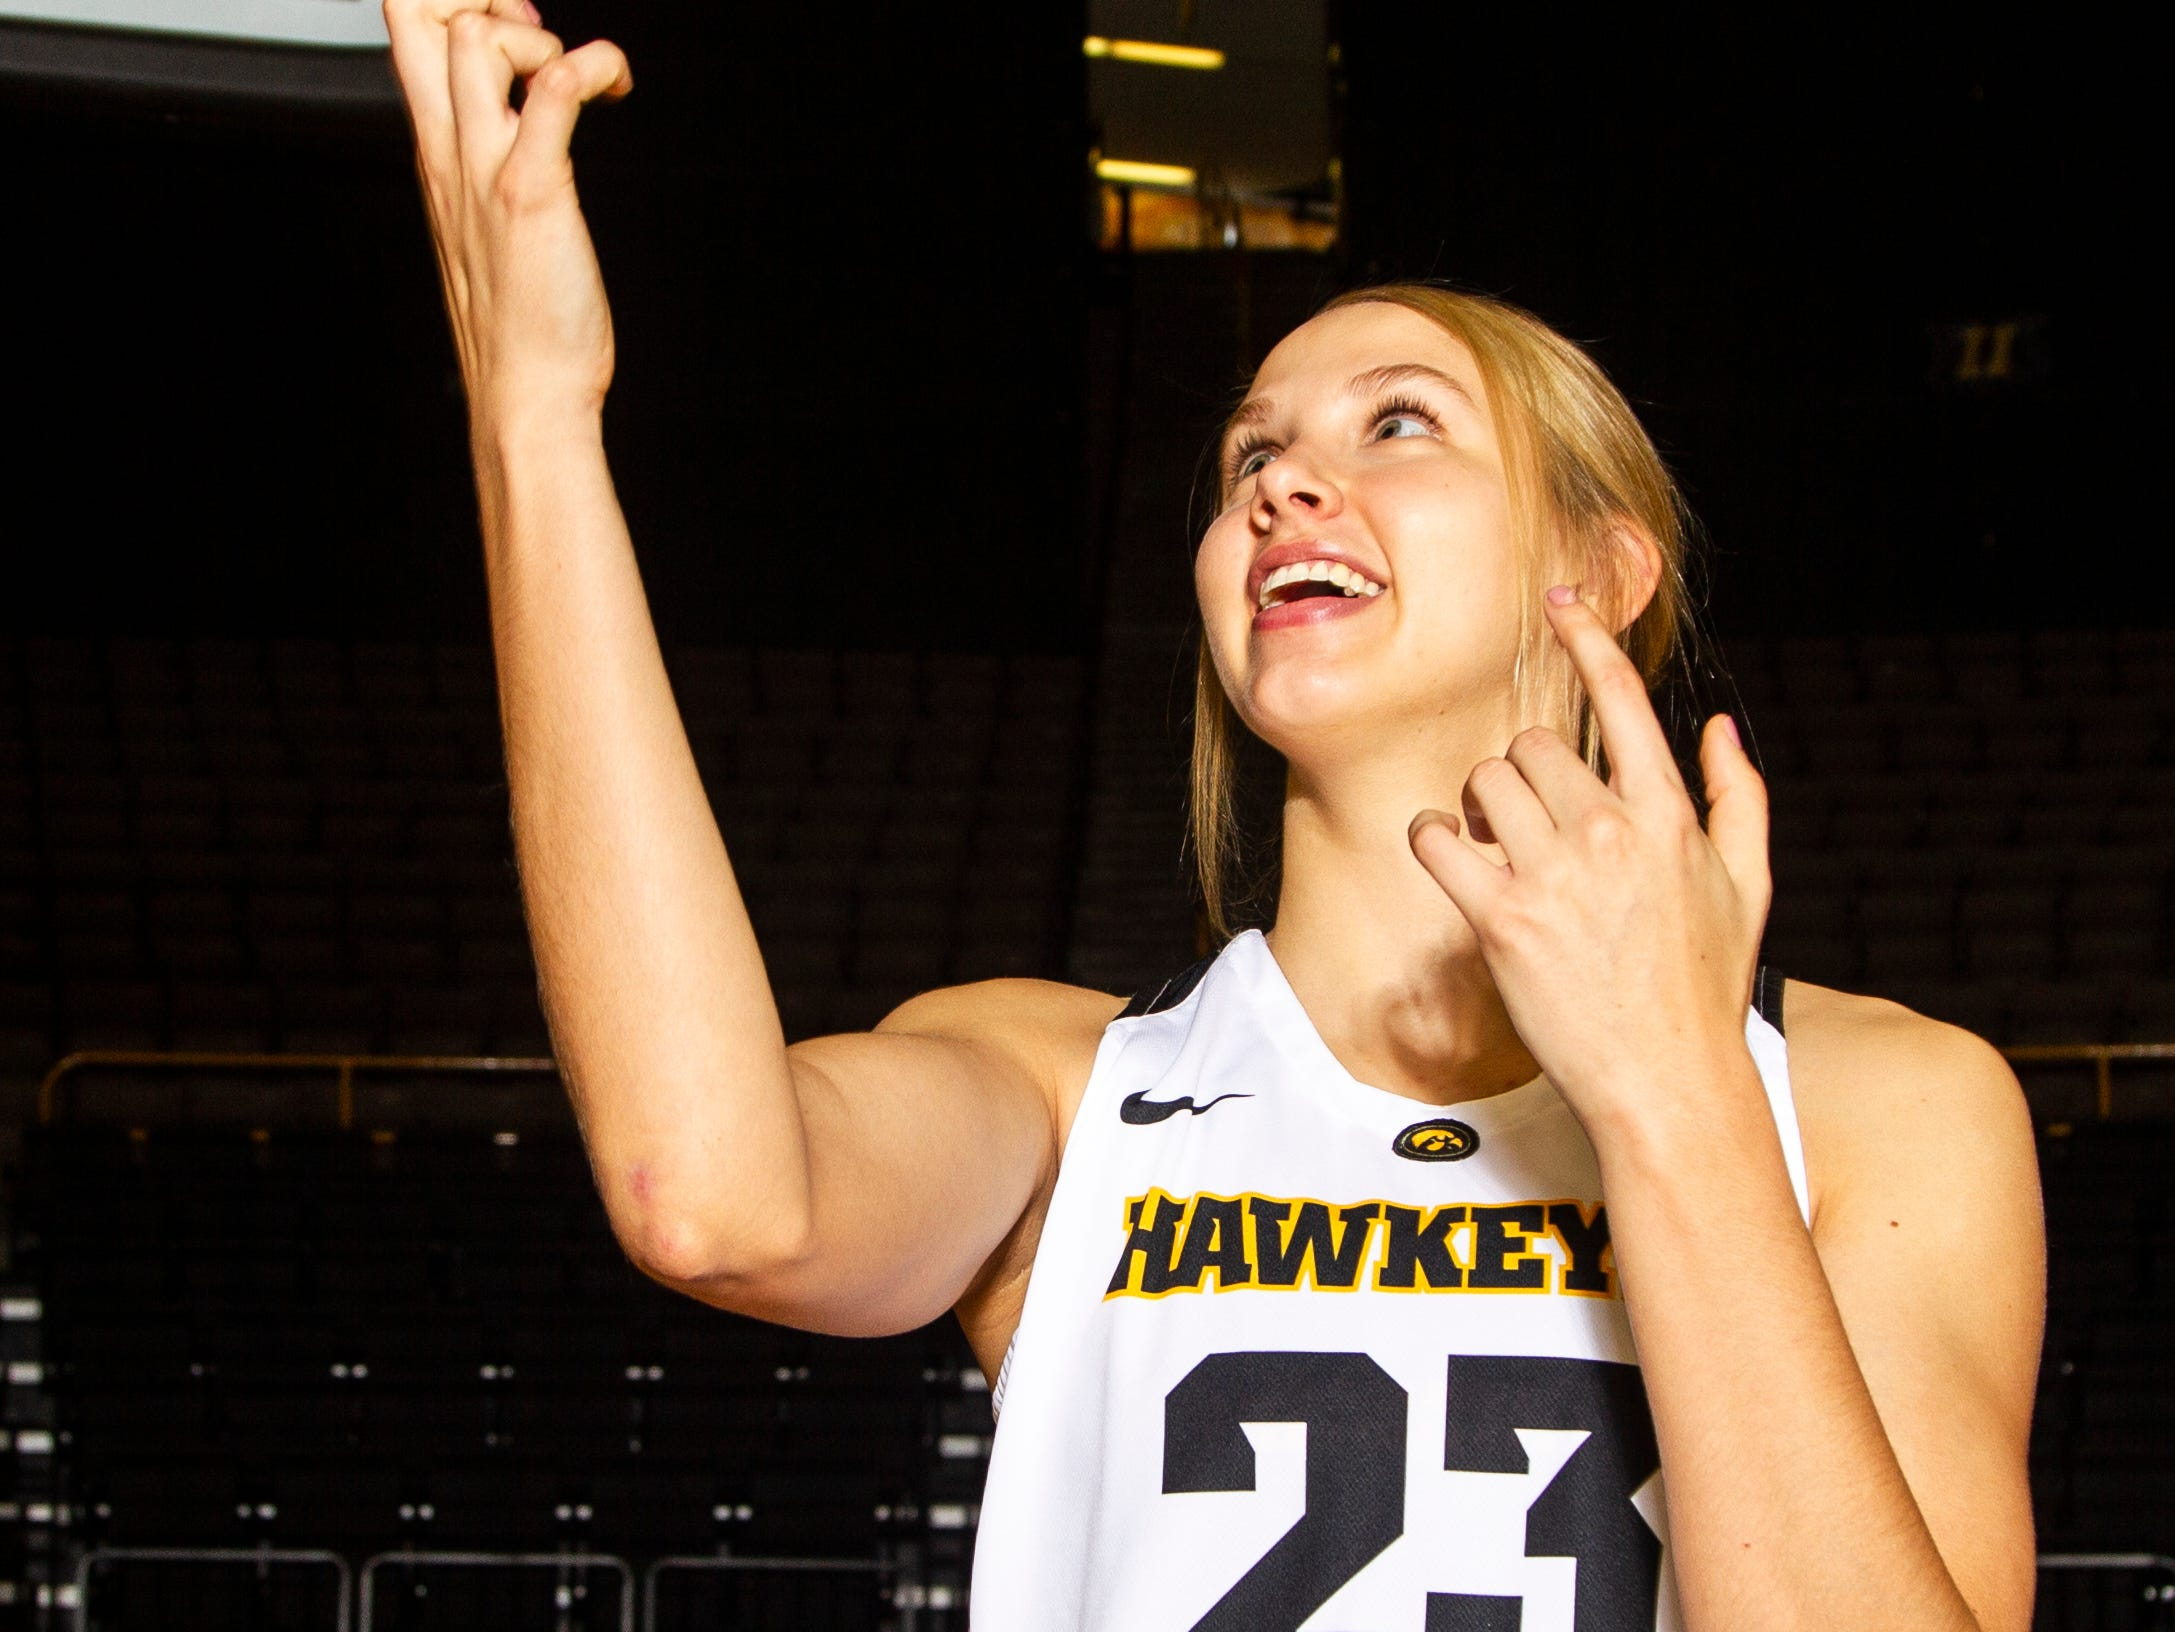 Iowa forward Logan Cook (23) poses for a portrait during Hawkeye women's basketball media day on Wednesday, Oct. 31, 2018, at Carver-Hawkeye Arena in Iowa City.